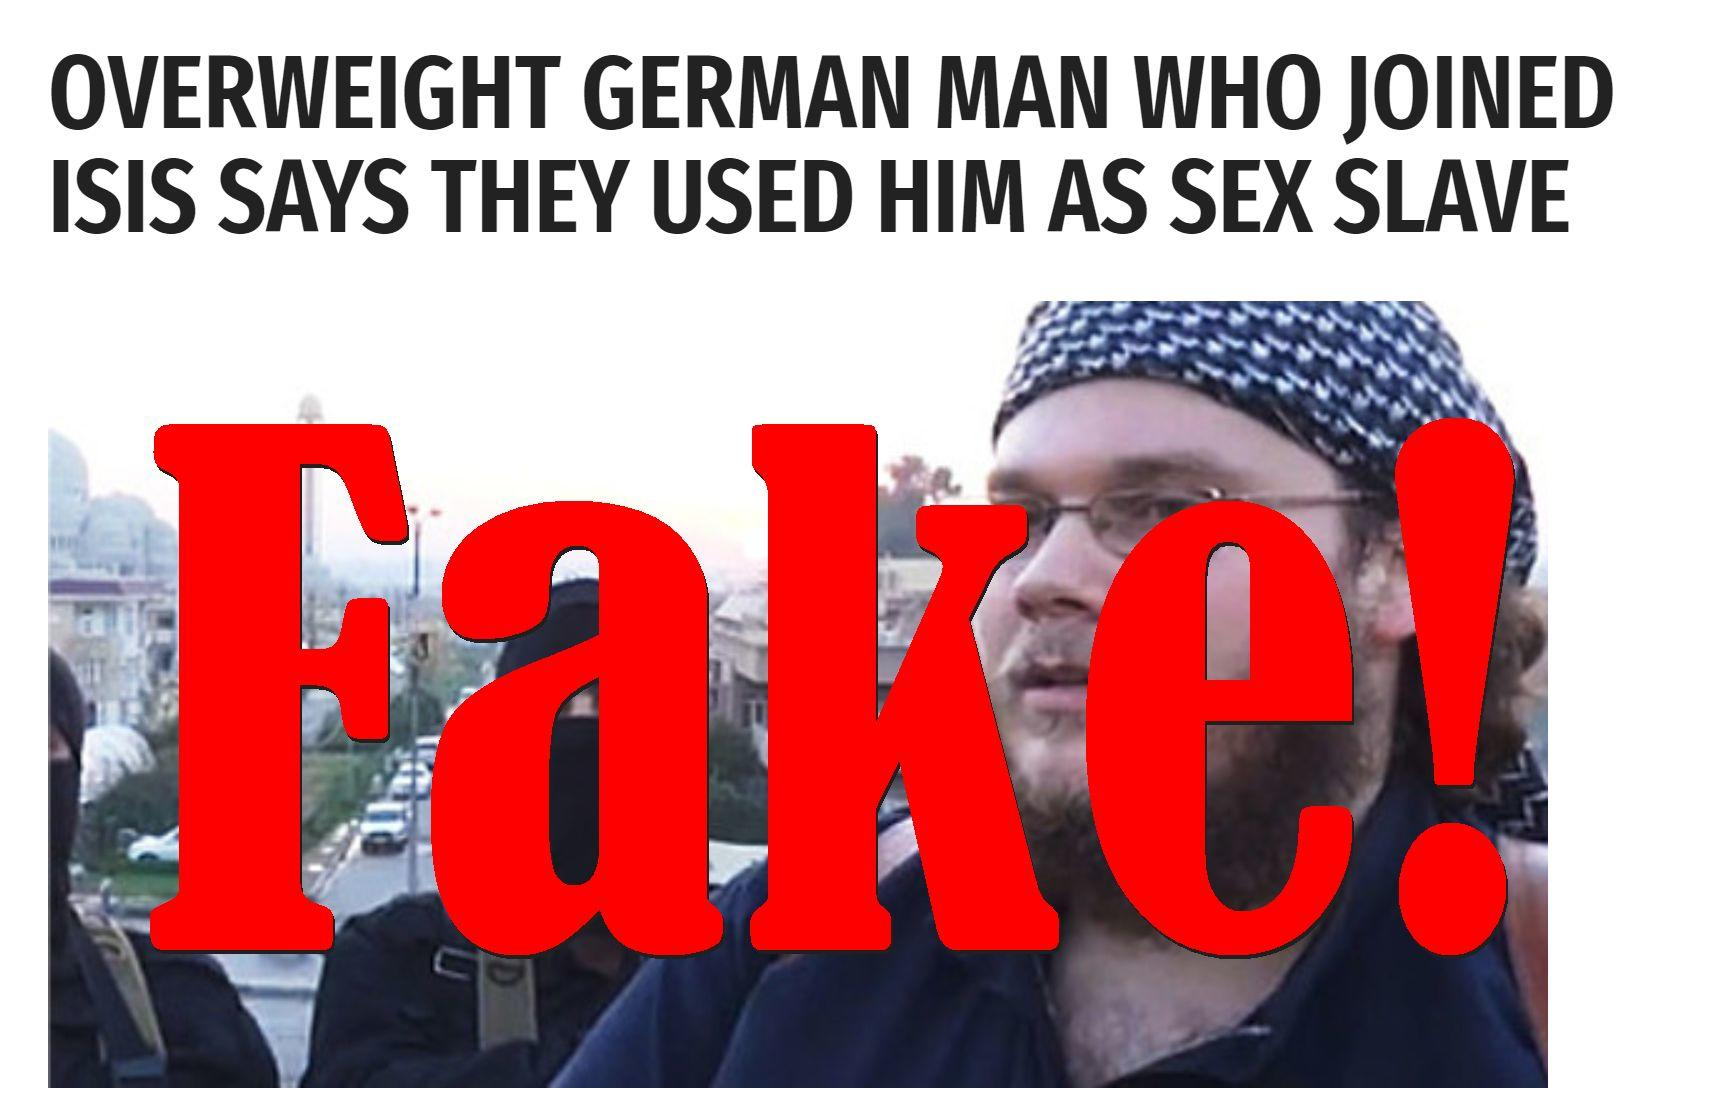 Fake News: Overweight German Man Who Joined ISIS NOT Used As Sex Slave